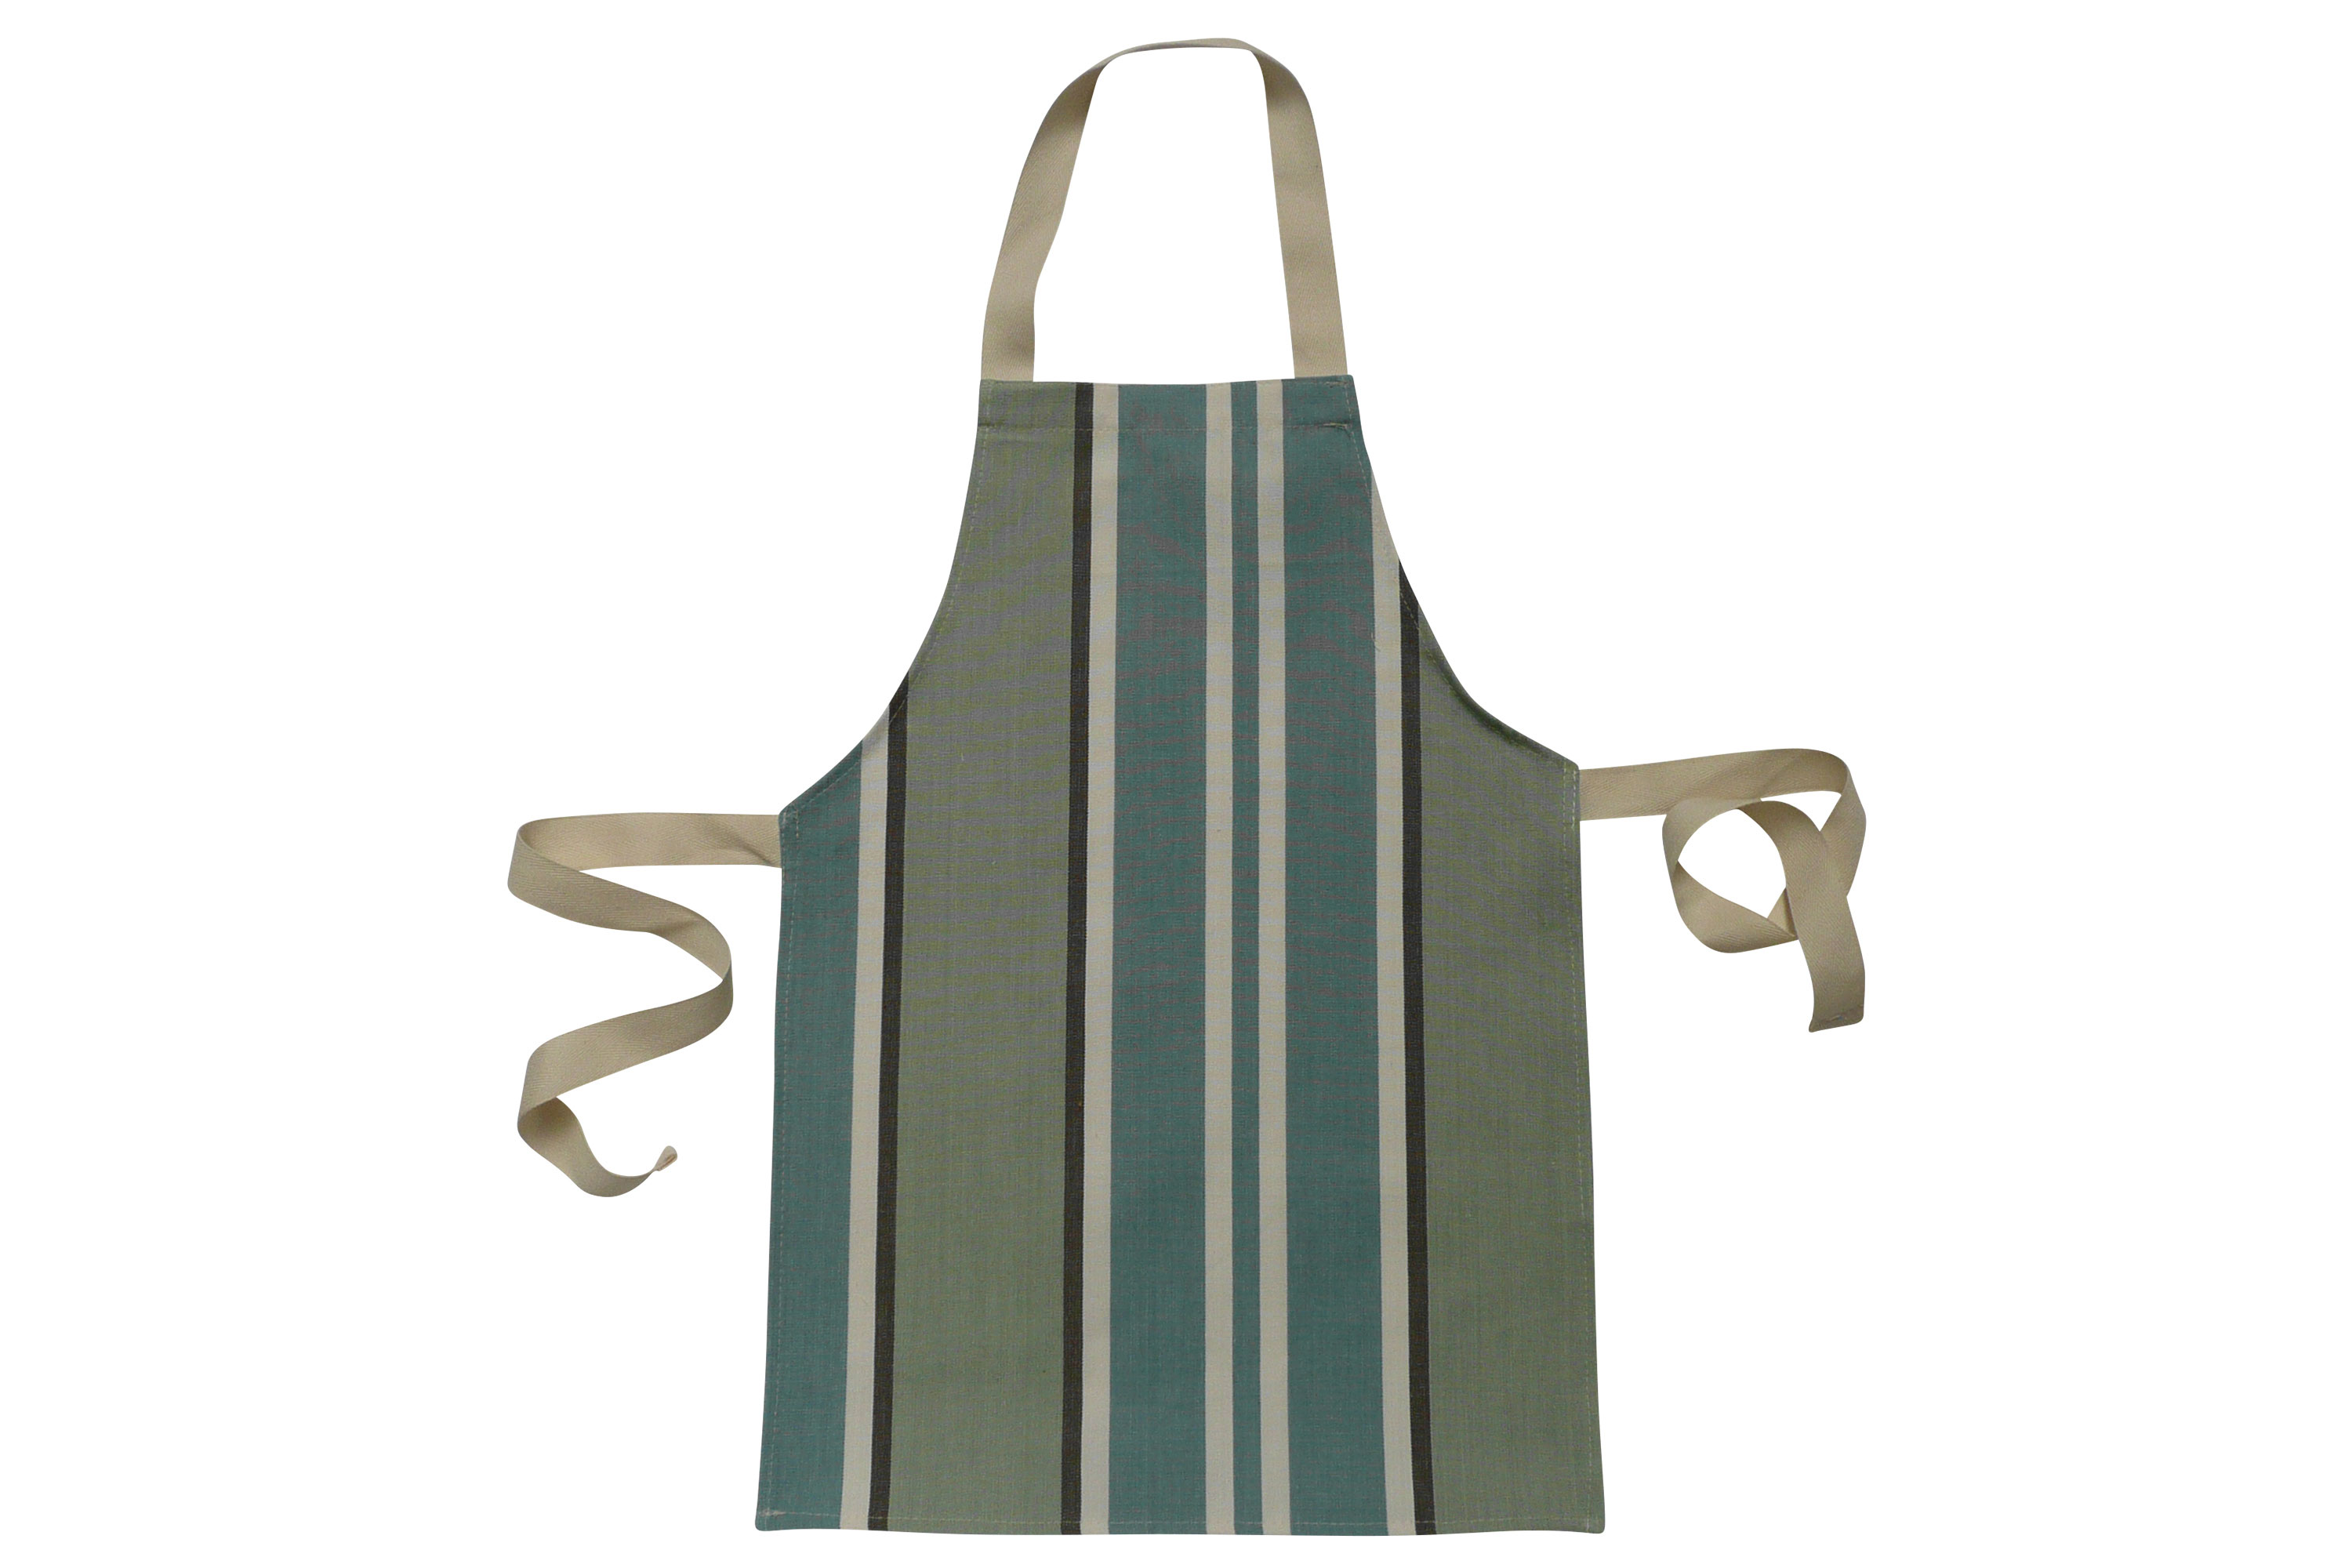 Toddlers Aprons - Striped Aprons For Small Childrenteal, pale aqua, dark grey